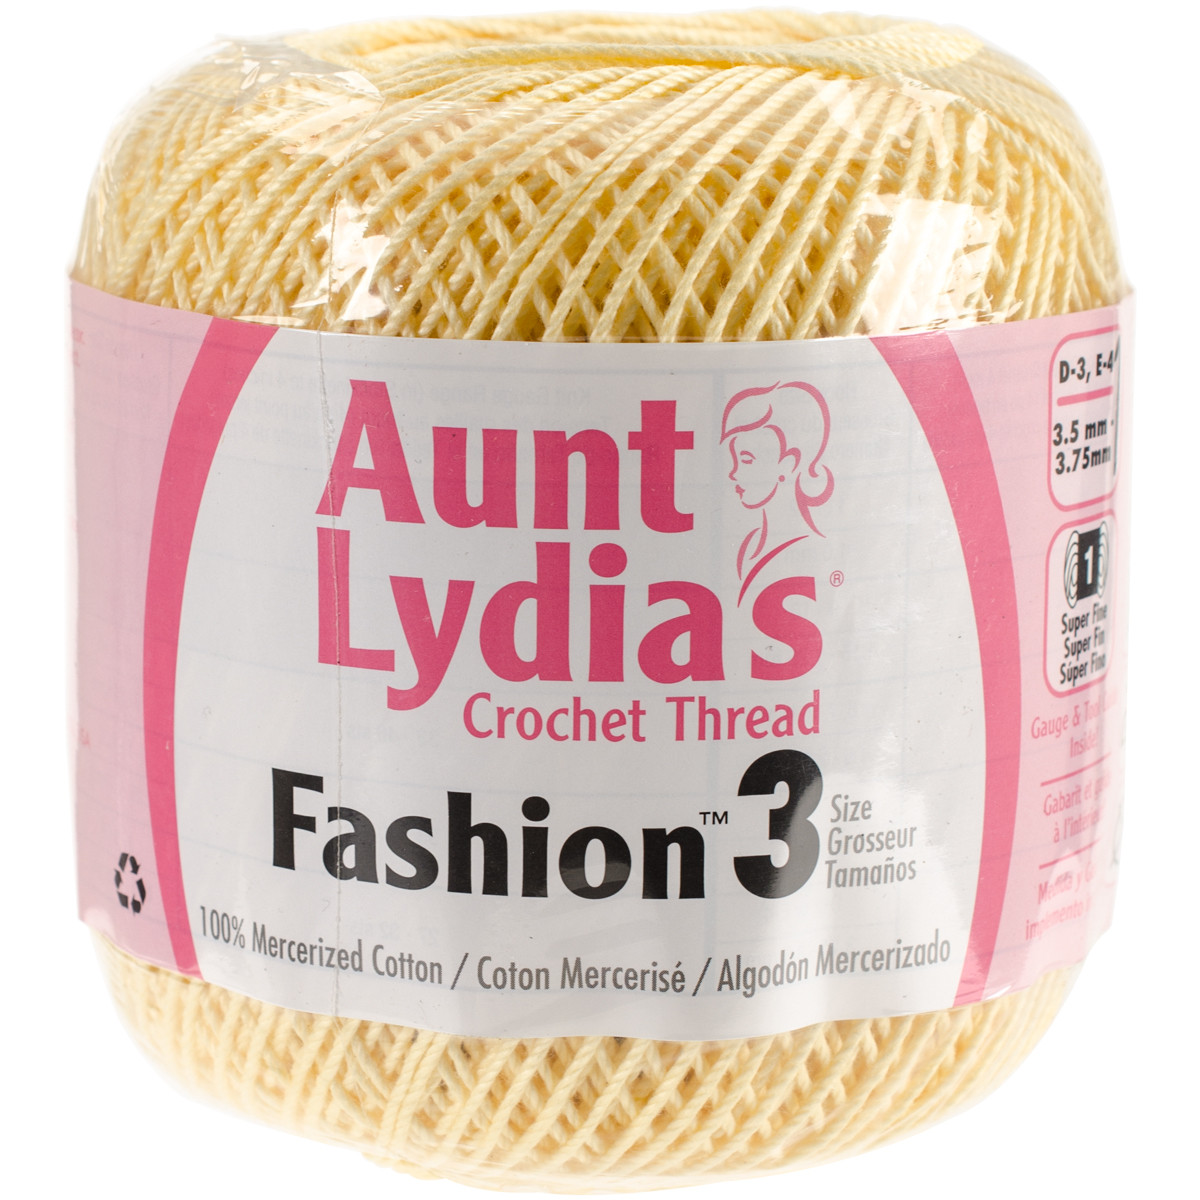 Aunt Lydia's Crochet Thread Awesome Aunt Lydia S Fashion Crochet Thread Size 3 Maize Of Charming 35 Models Aunt Lydia's Crochet Thread